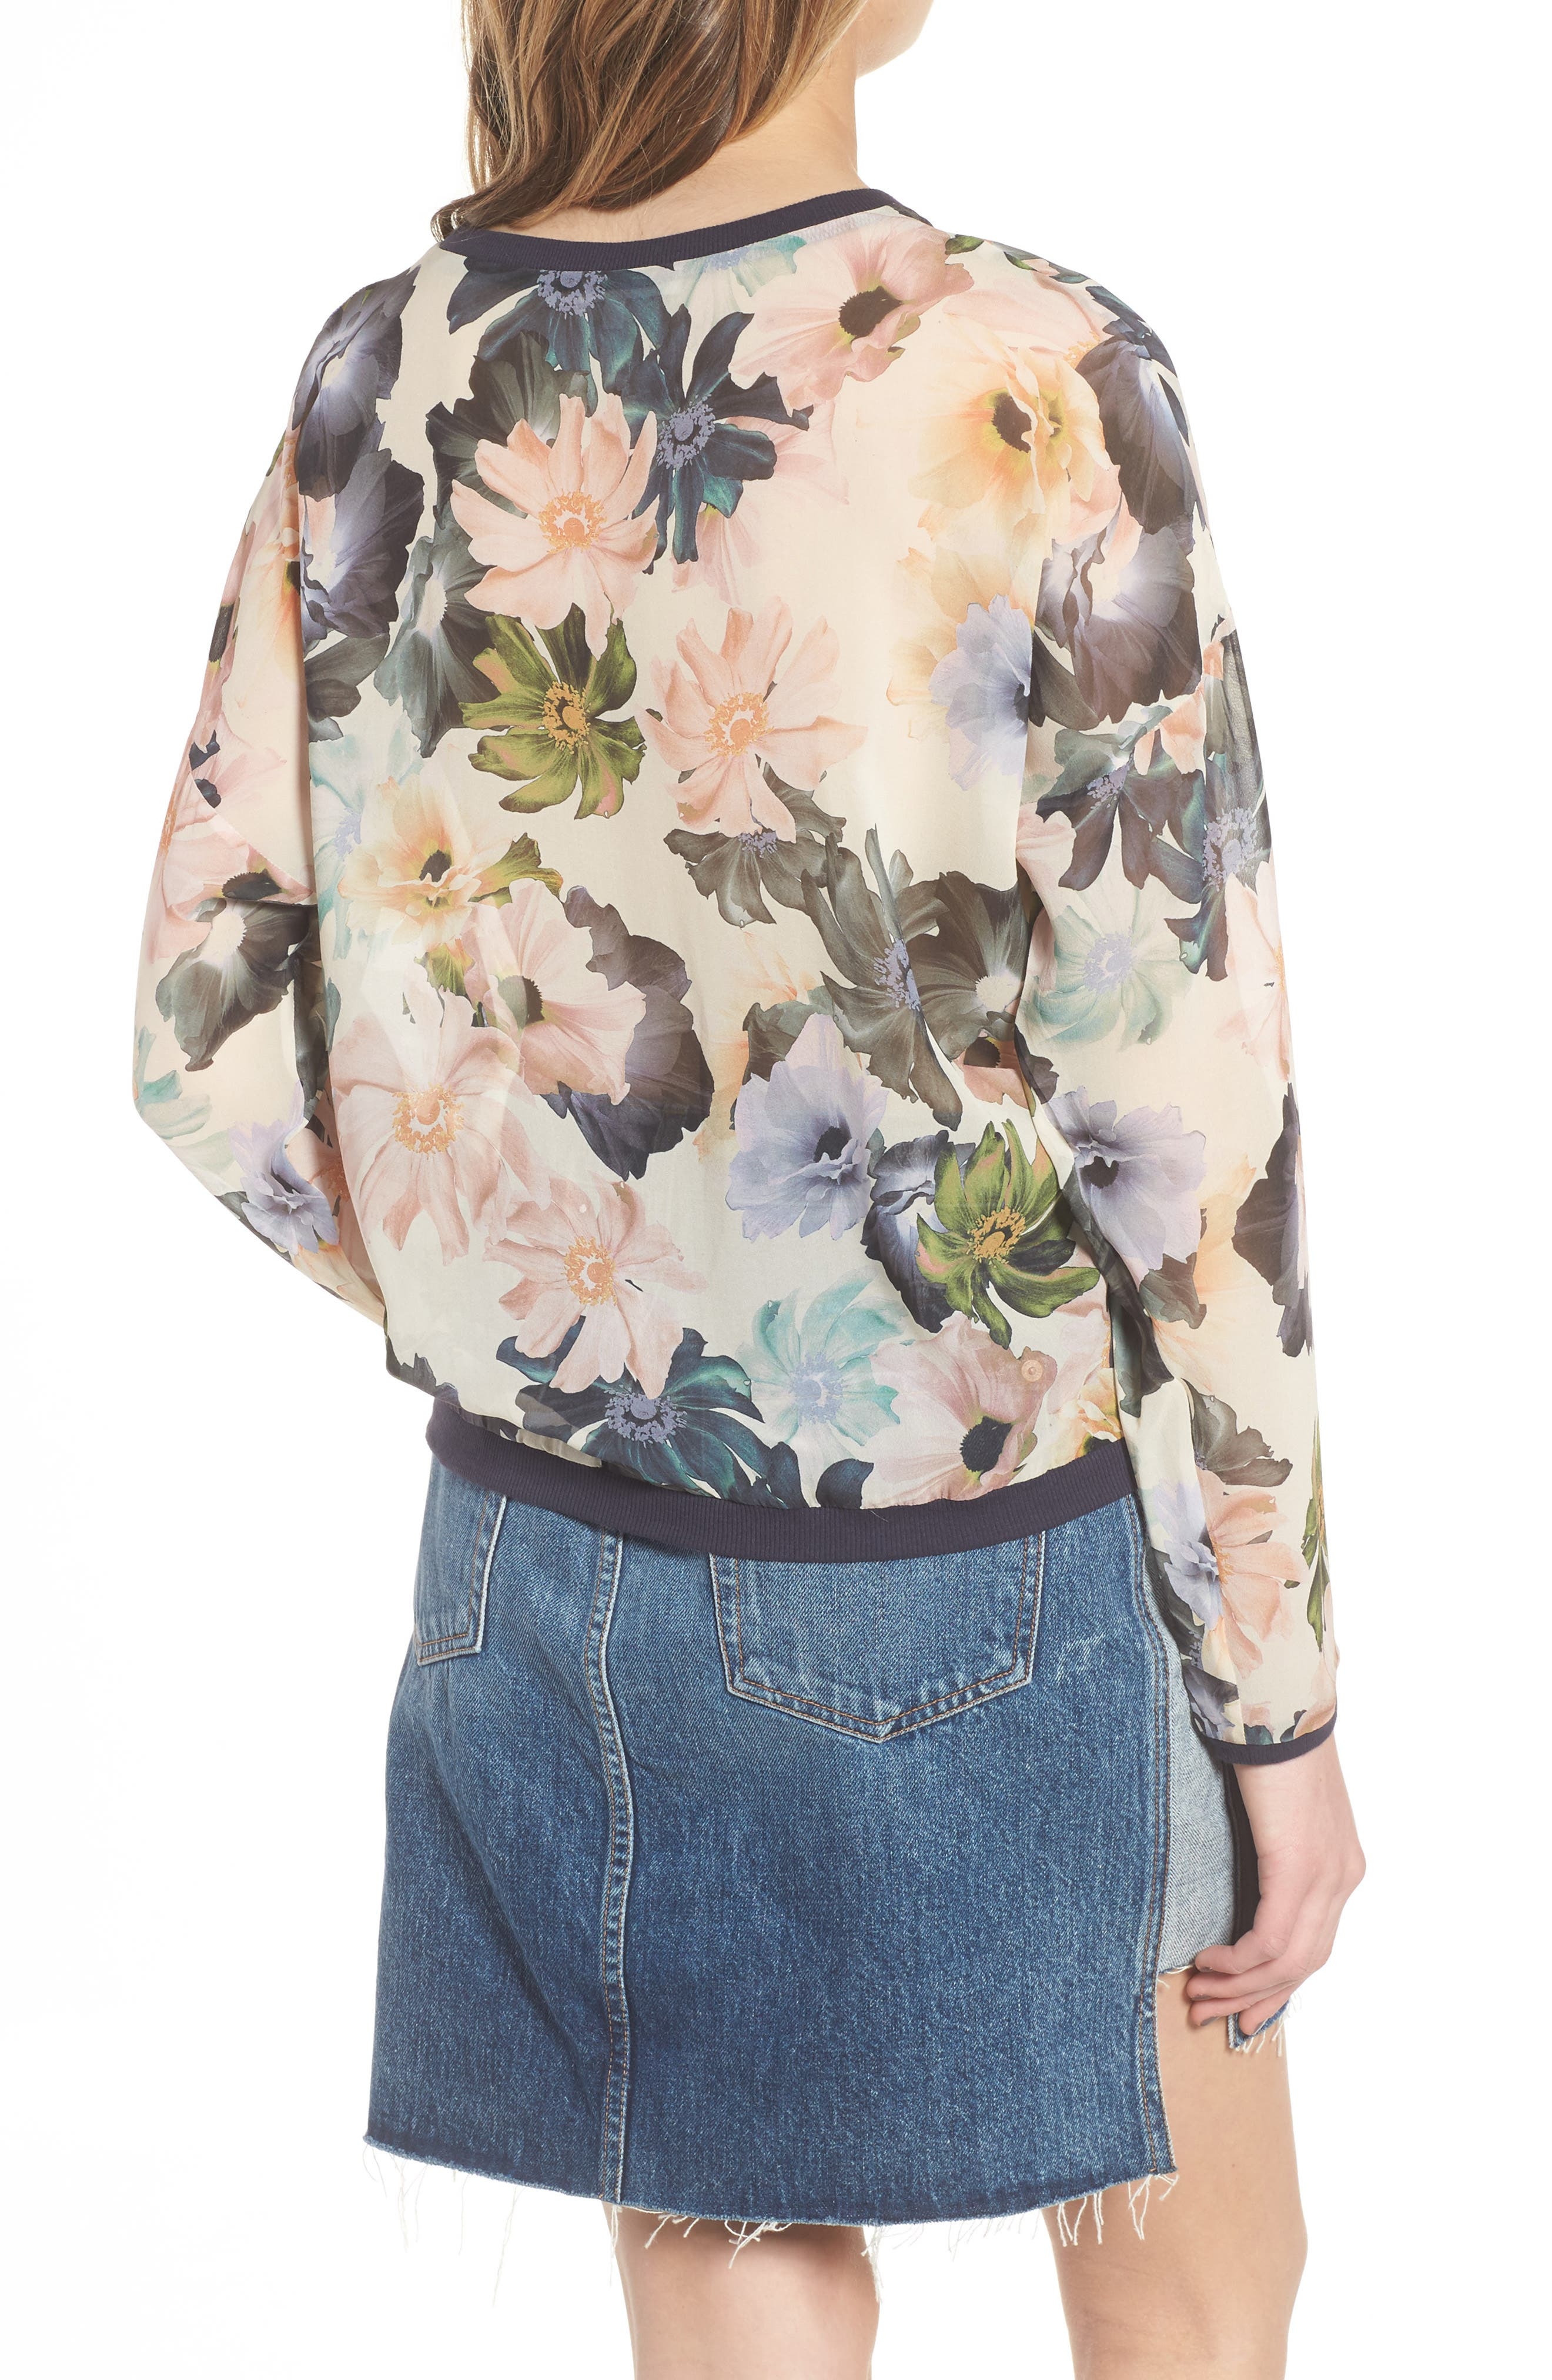 Georgette Sweatshirt,                             Alternate thumbnail 2, color,                             Desert Garden Print